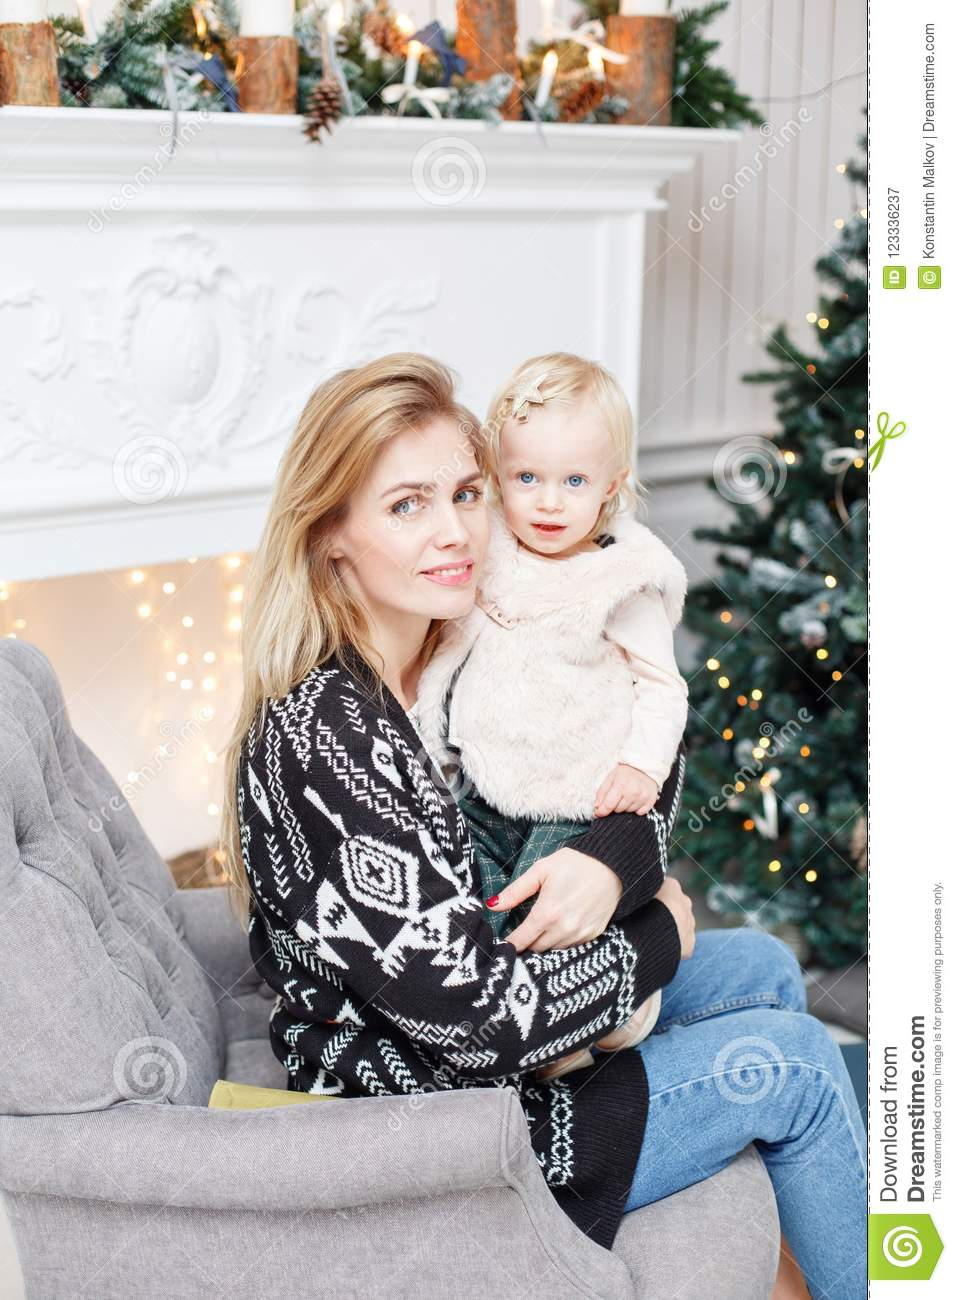 Cheerful mom embraces her cute baby daughter . Parent and little child having fun near Christmas tree indoors. Loving